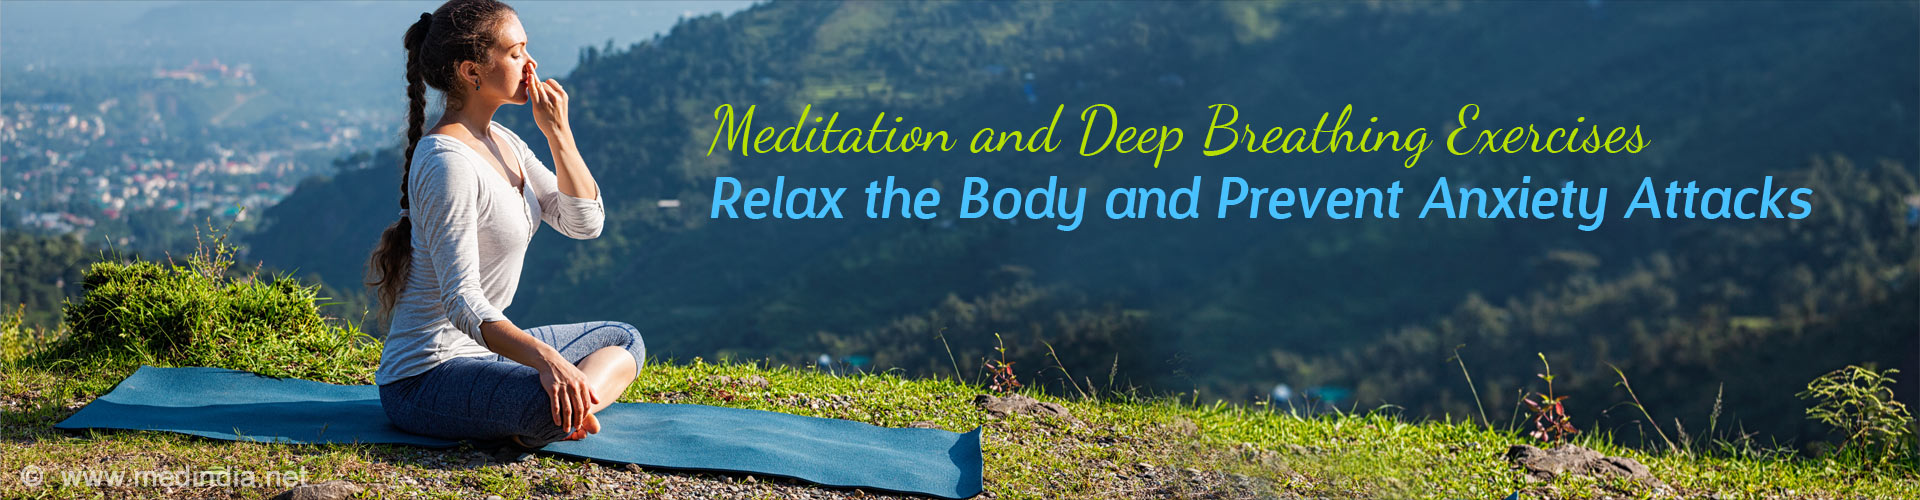 Meditation and Deep Breathing Exercises Relax the Body and Prevent Anxiety Attacks